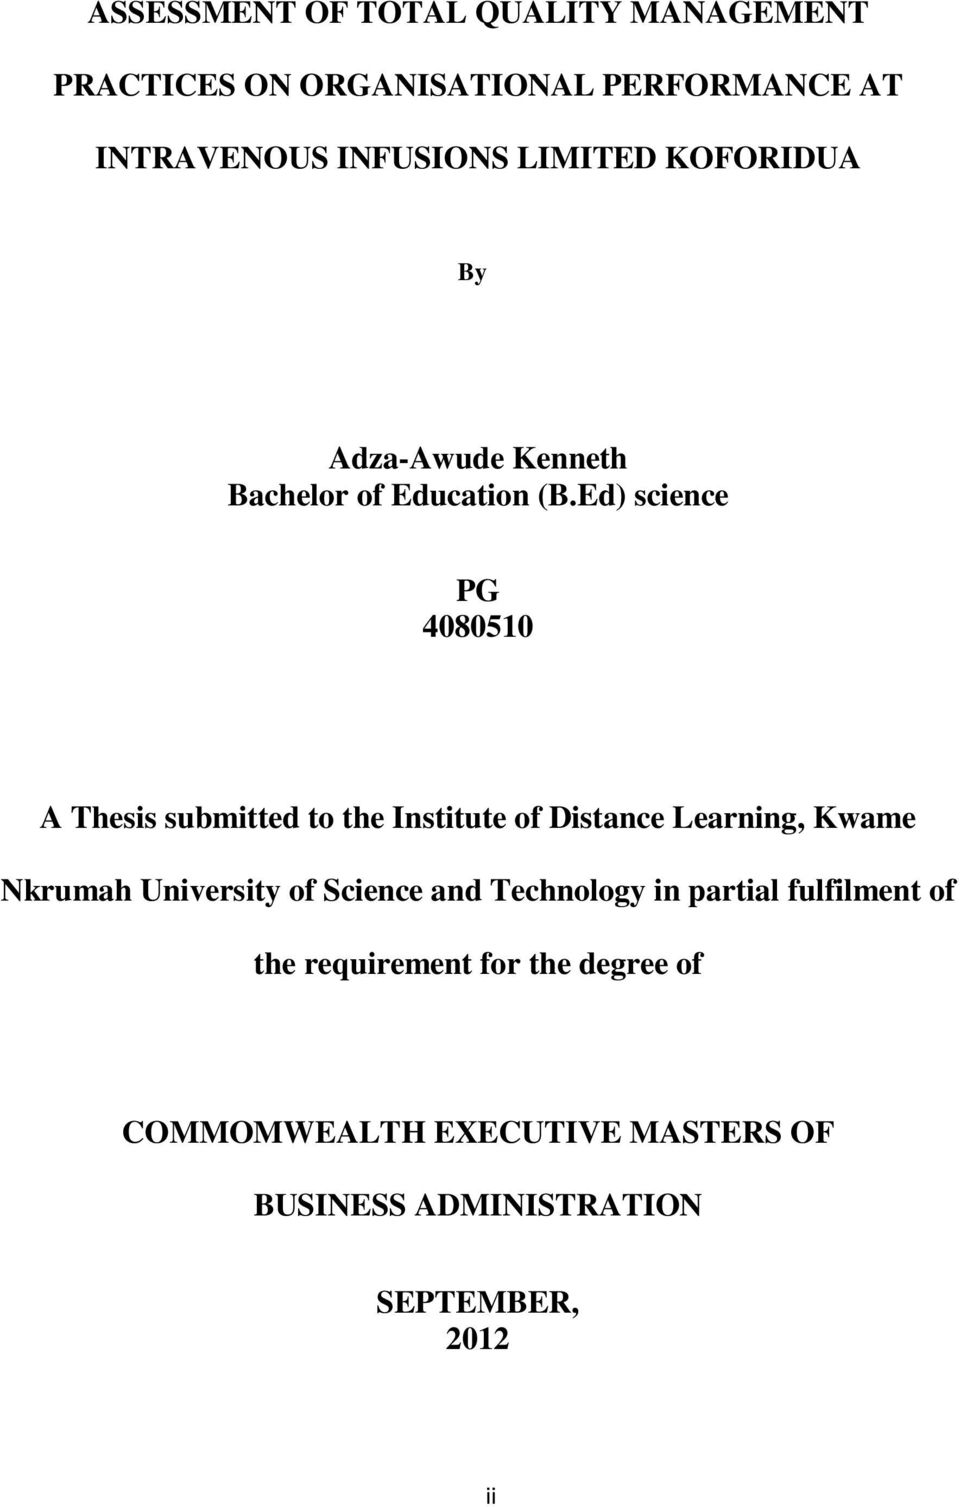 phd thesis on organizational learning Perceptions of a learning organization and factors this dissertation is brought to you for free and open access by the graduate school at scholar commons pursued my academic and professional dream of earning a phd.